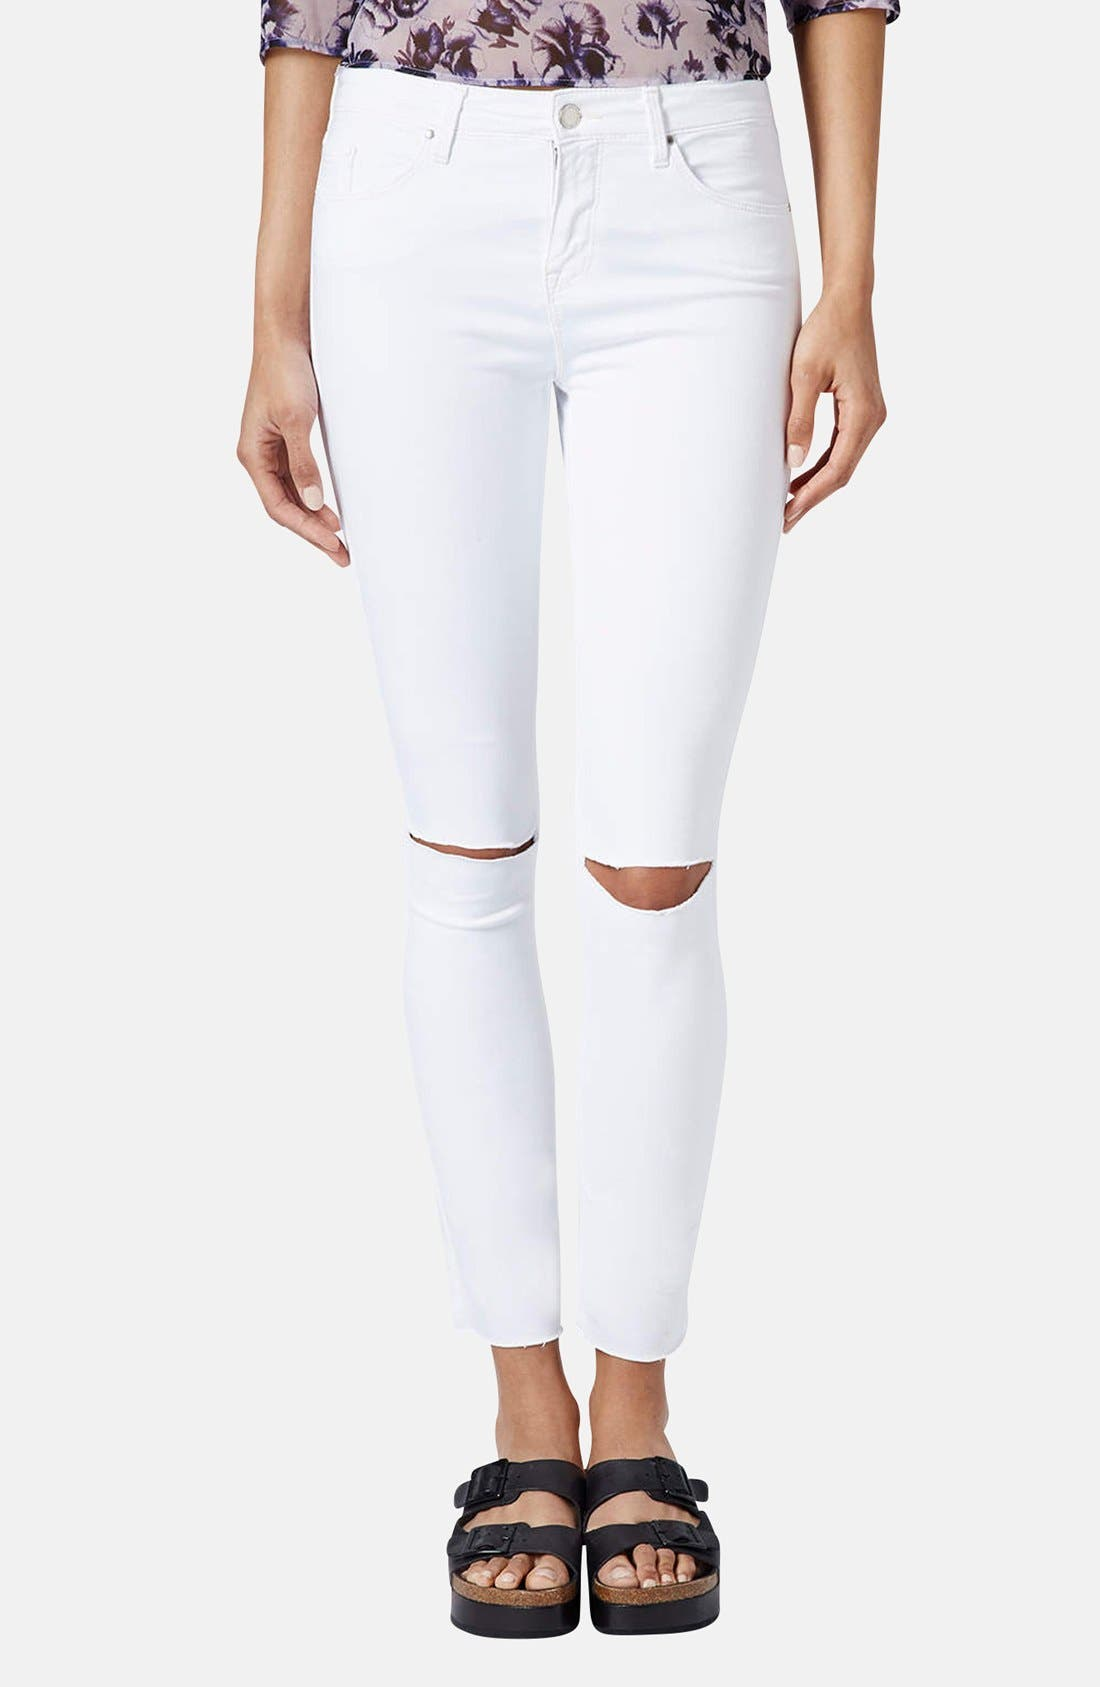 Alternate Image 1 Selected - Topshop Moto 'Leigh' Distressed Skinny Jeans